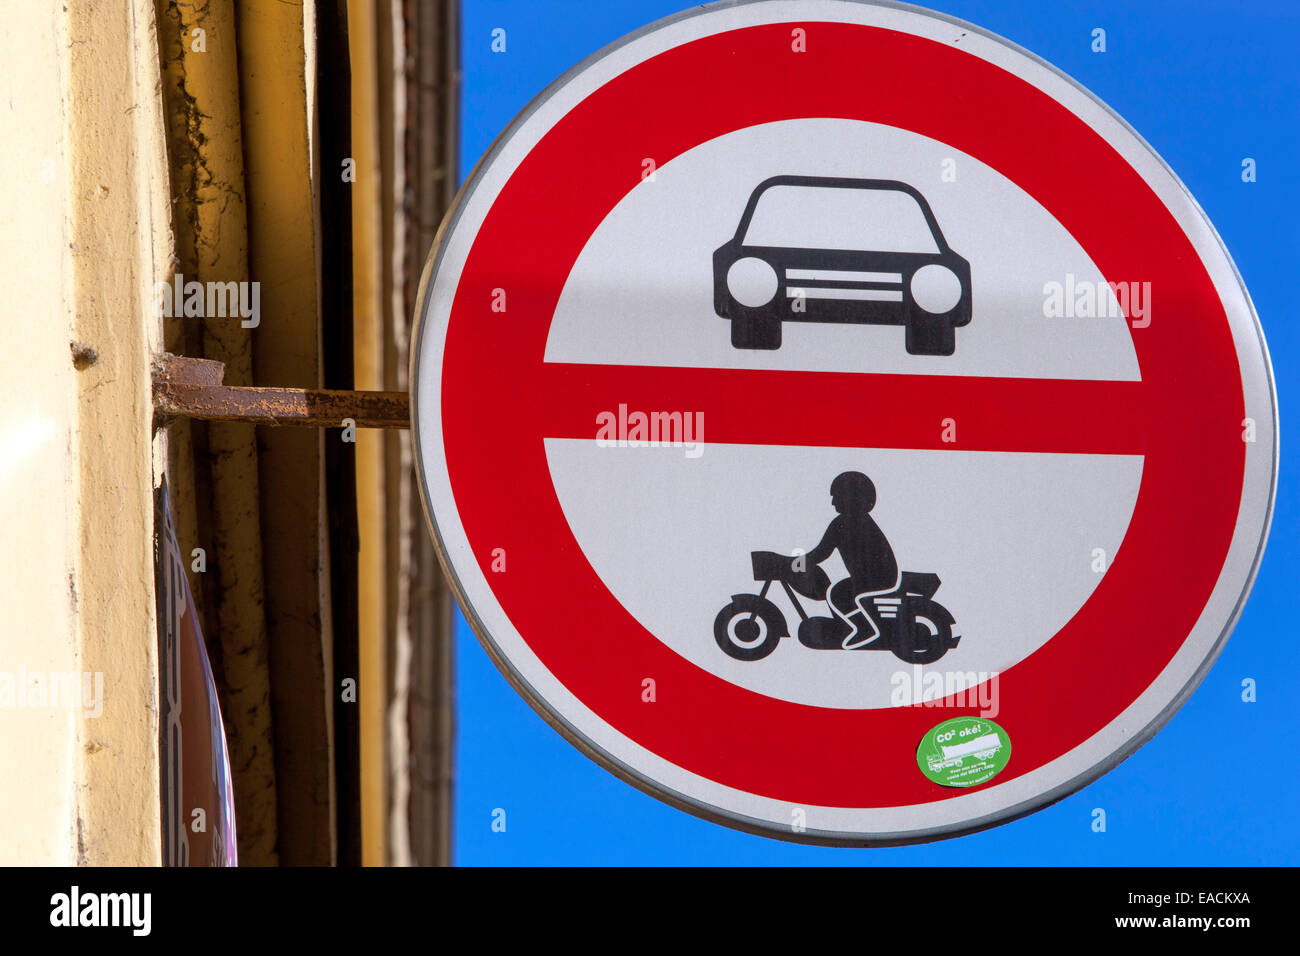 Road sign showing no entry for cars or motorcycles Czech - Stock Image